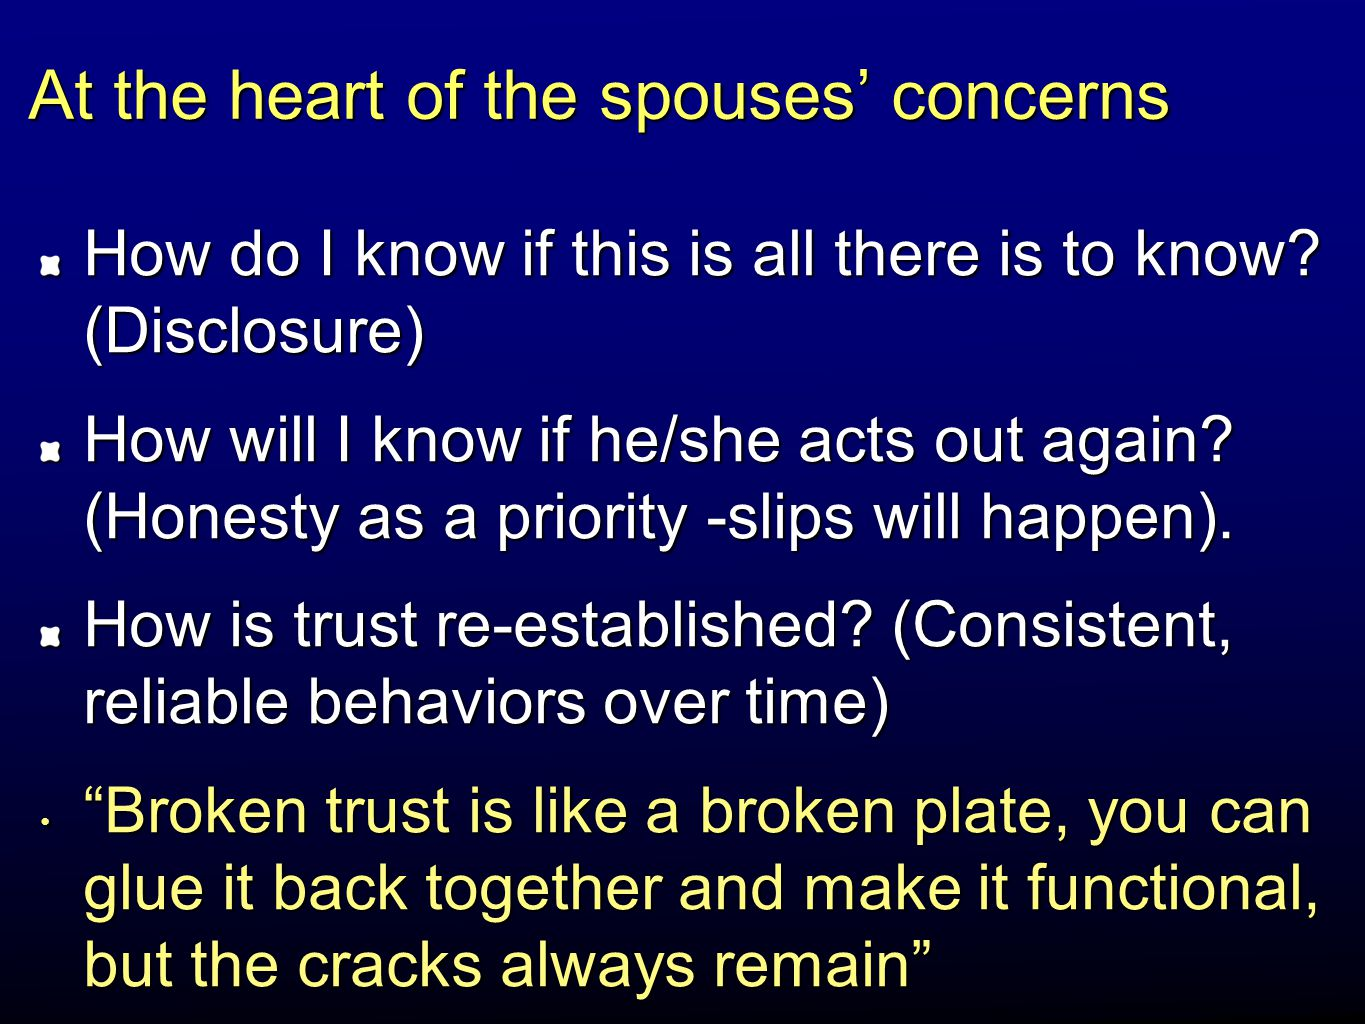 At the heart of the spouses' concerns How do I know if this is all there is to know? (Disclosure) How will I know if he/she acts out again? (Honesty a